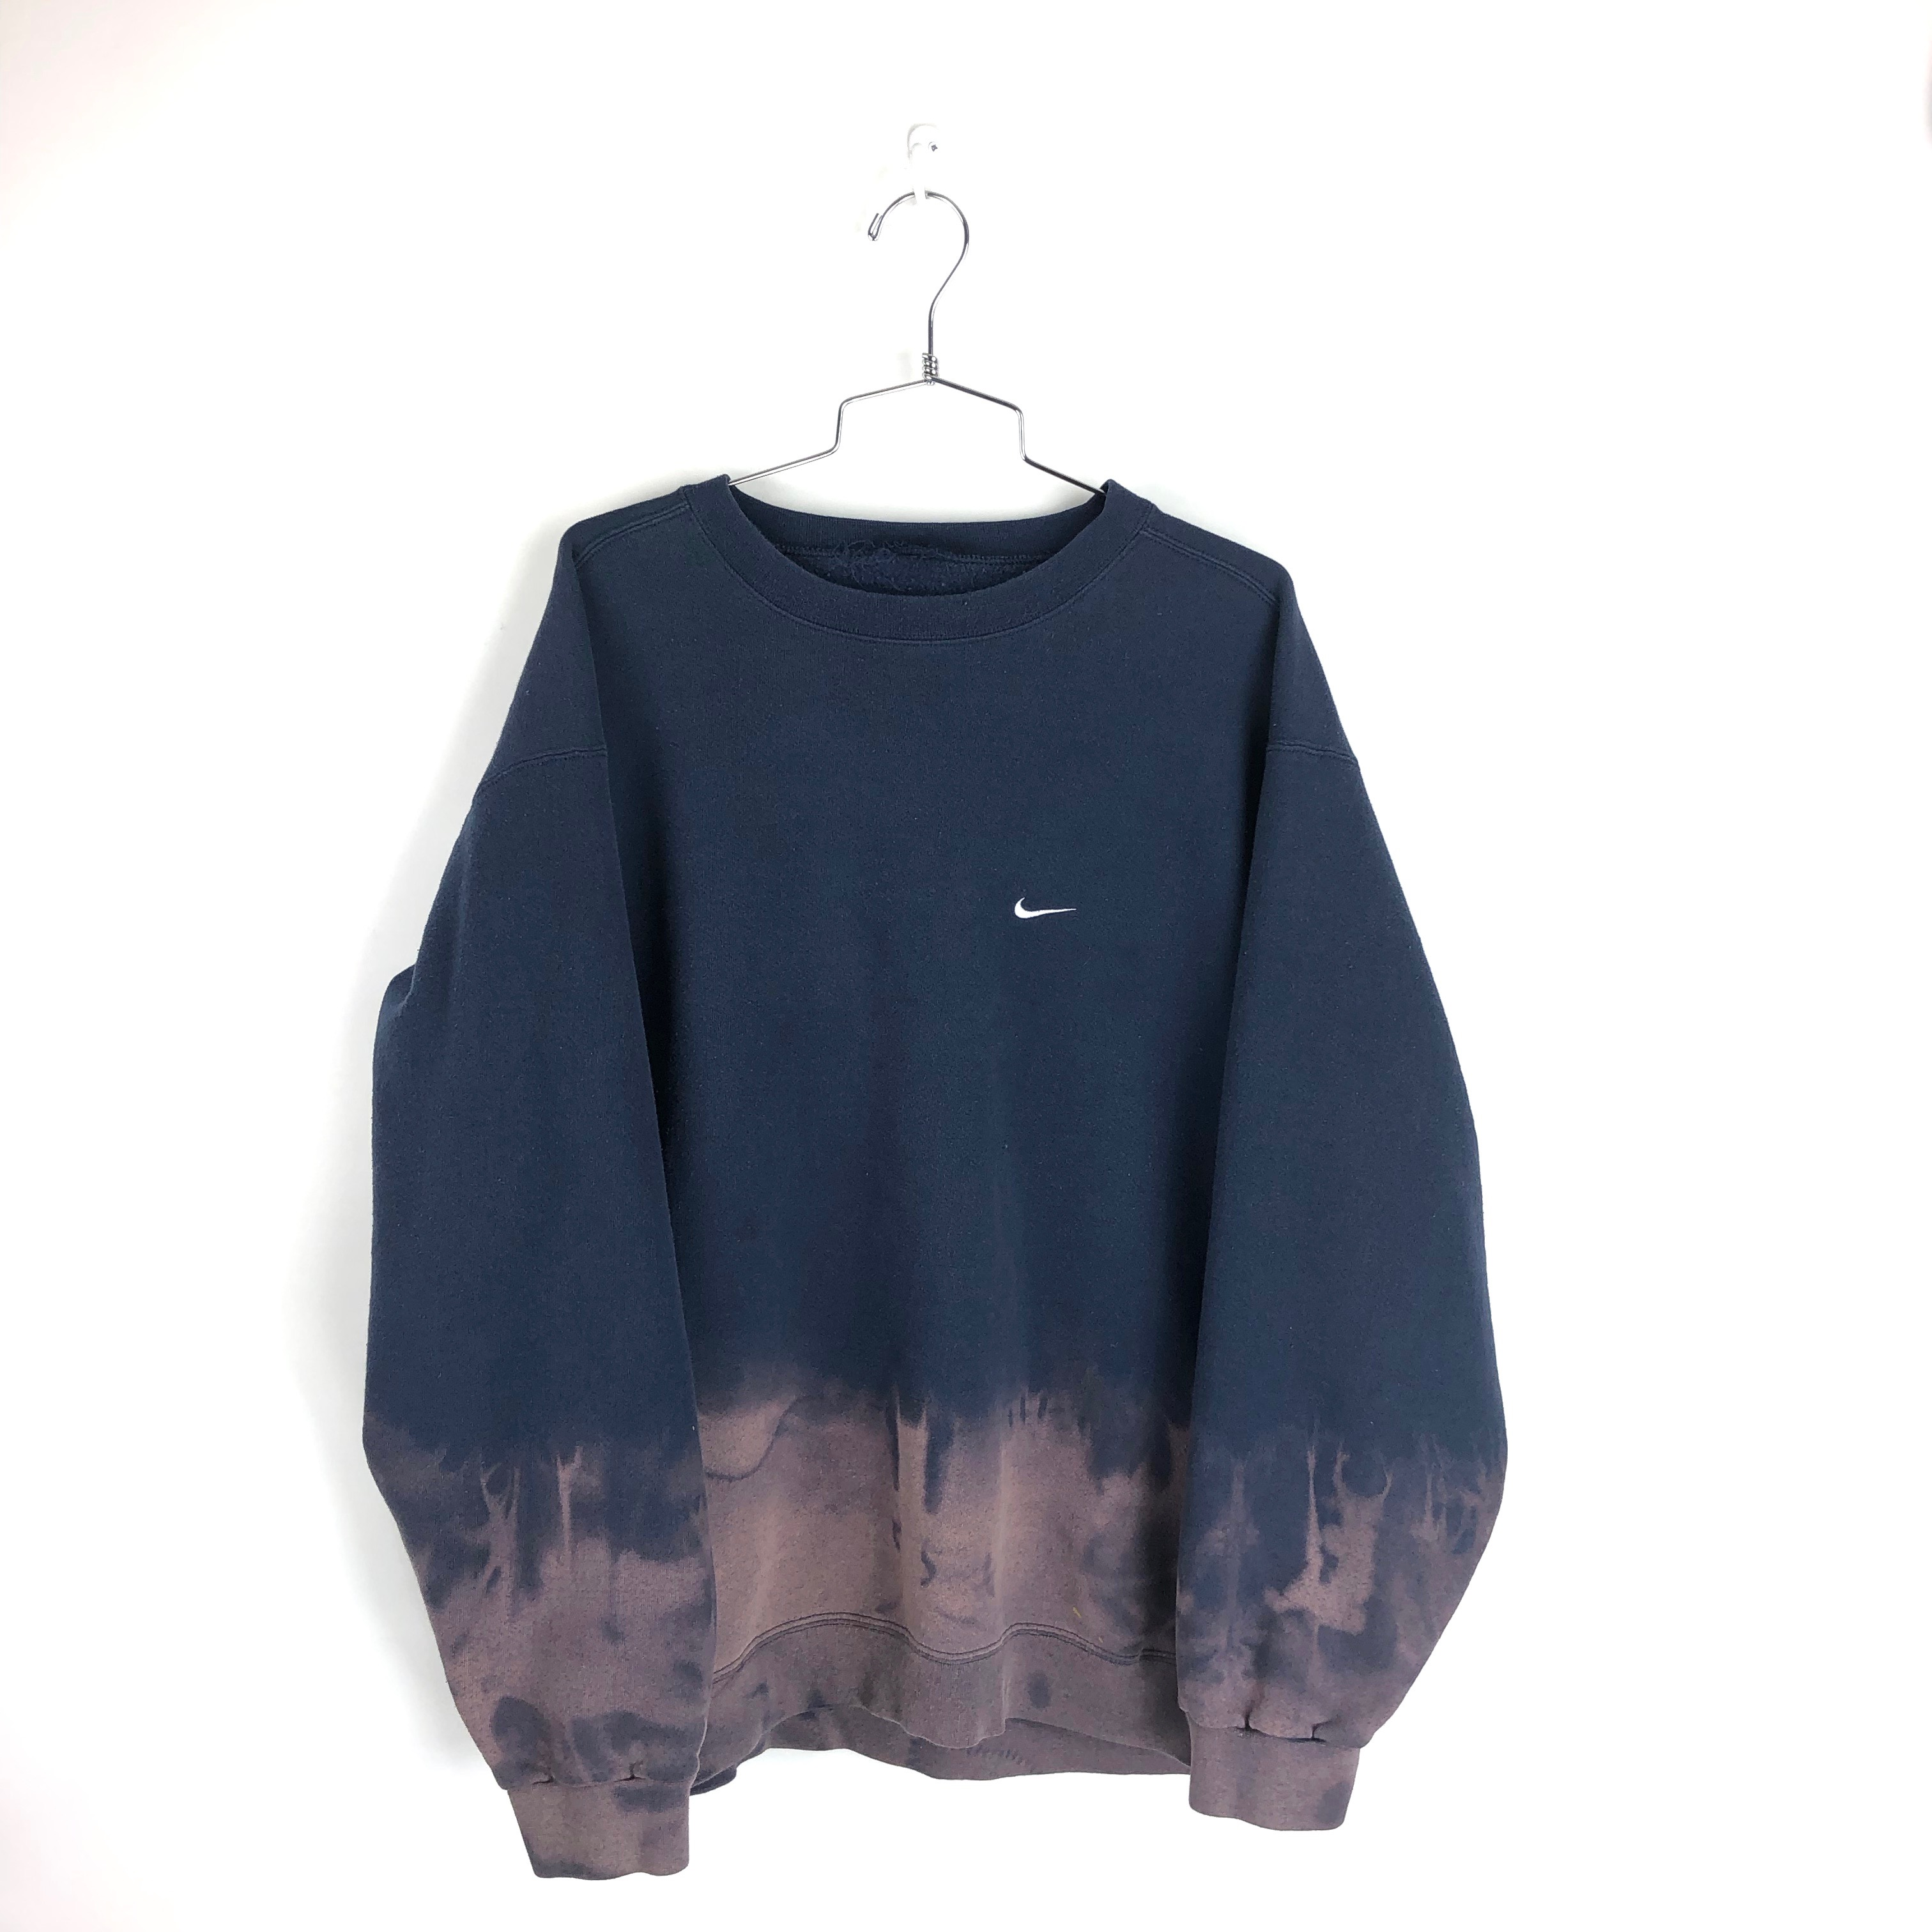 c92521ffbbf710 Nike × Vintage ×. Vintage 90s Nike Crewneck Sz XL Mens 90s Distressed Faded Dyed  Sweatshirt Pullover. Size  US ...